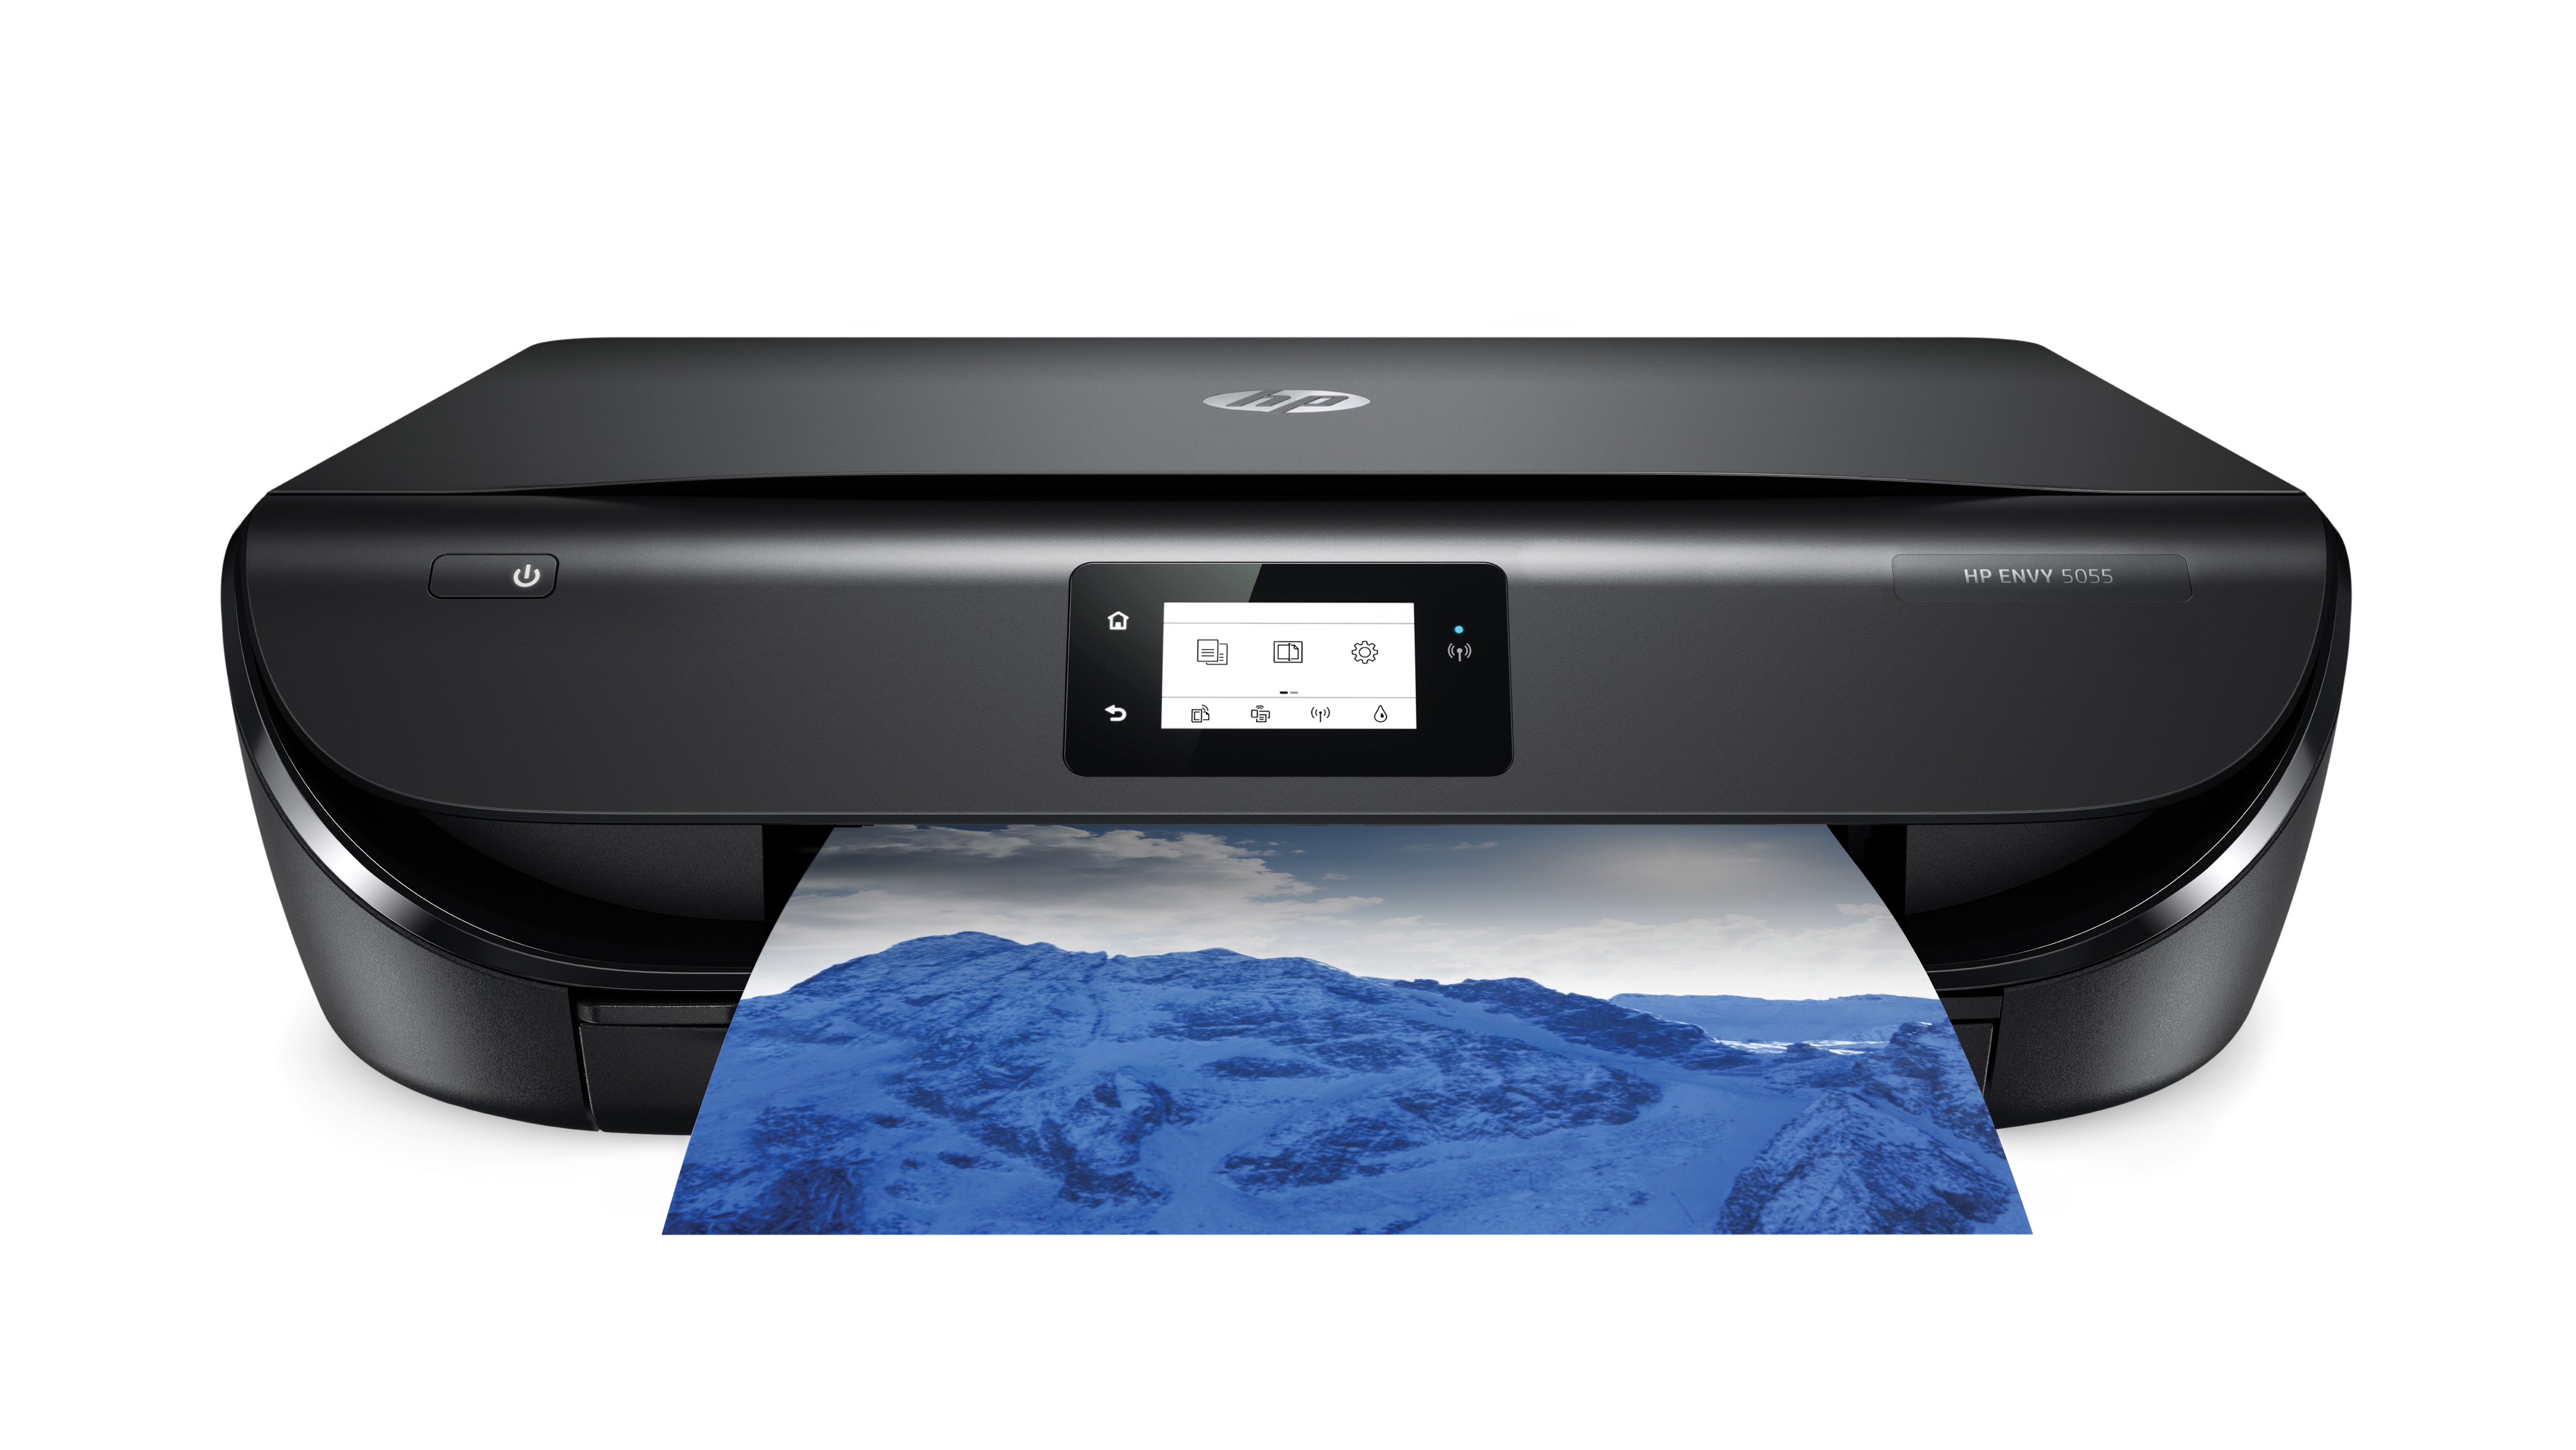 HP Envy 5055 Wireless InkJet All-In-One Color Printer